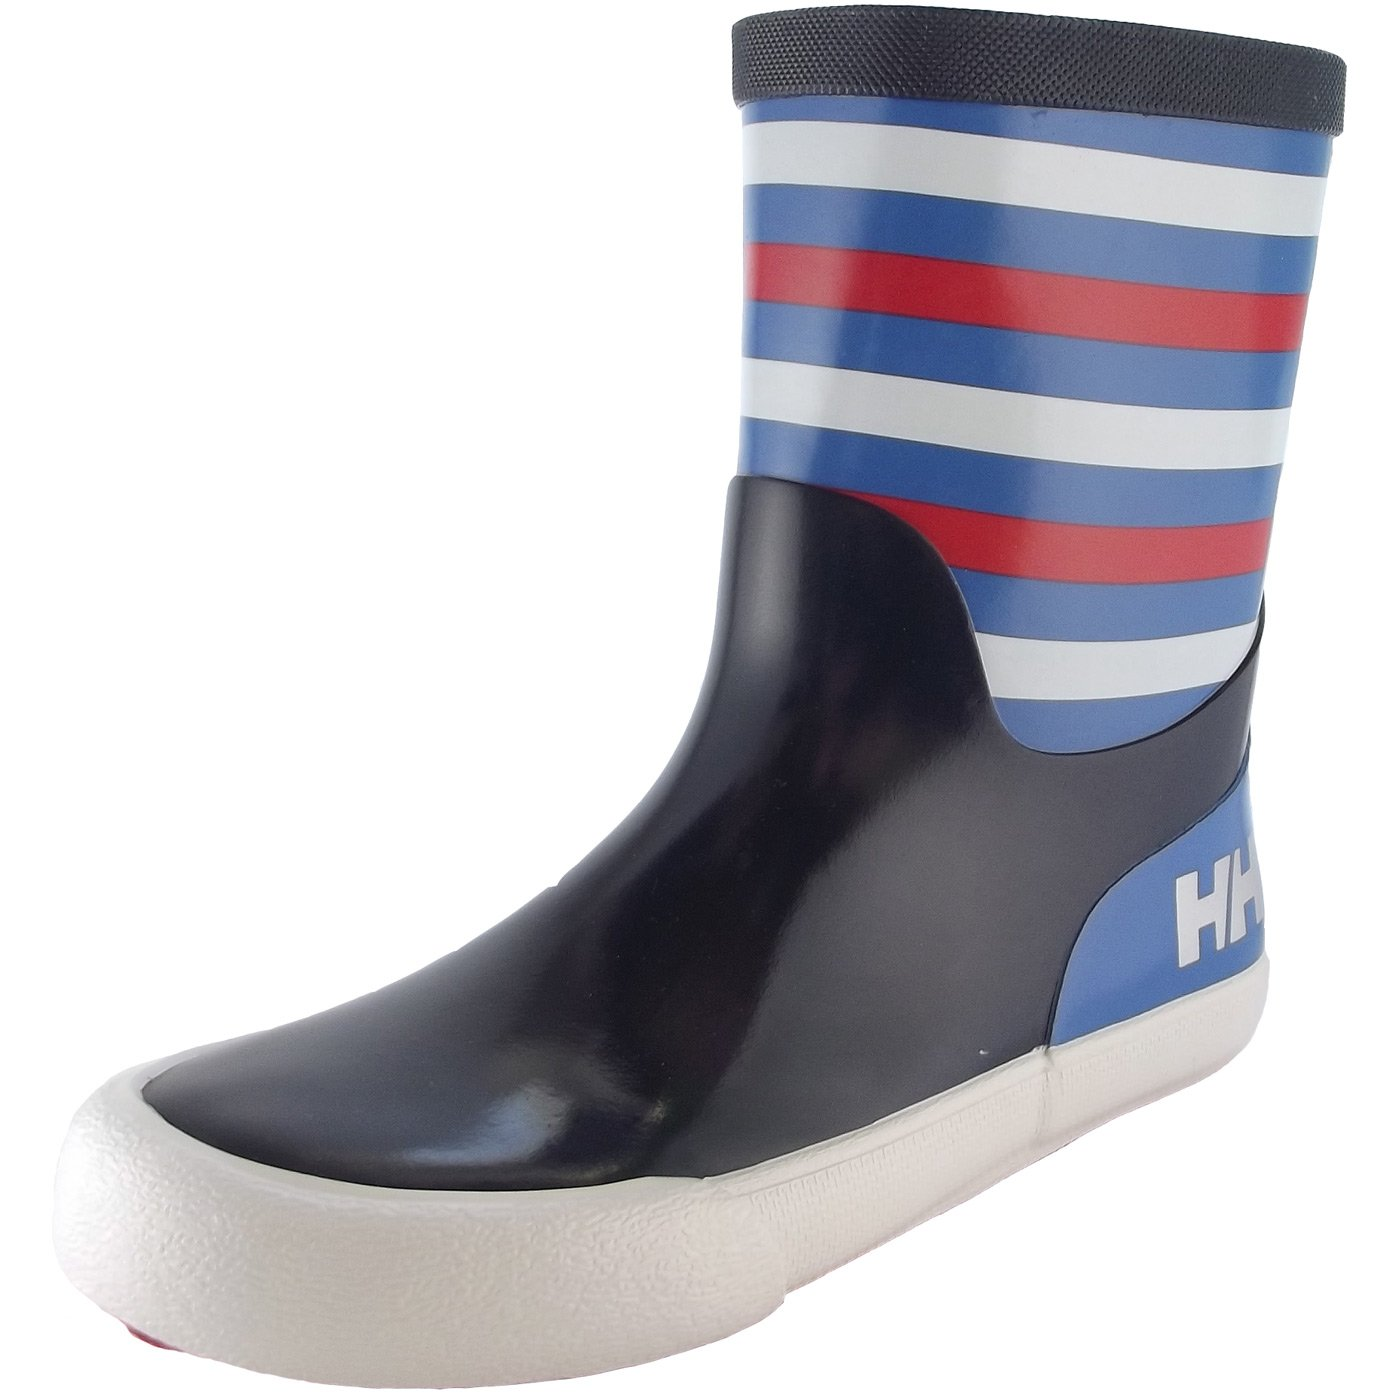 Helly Hansen Boys and Girls Waterproof Nordvik Stripe Youth Rain Boots, Evening Blue/Blue Water/Grenadine/Off White/Reflective, 13